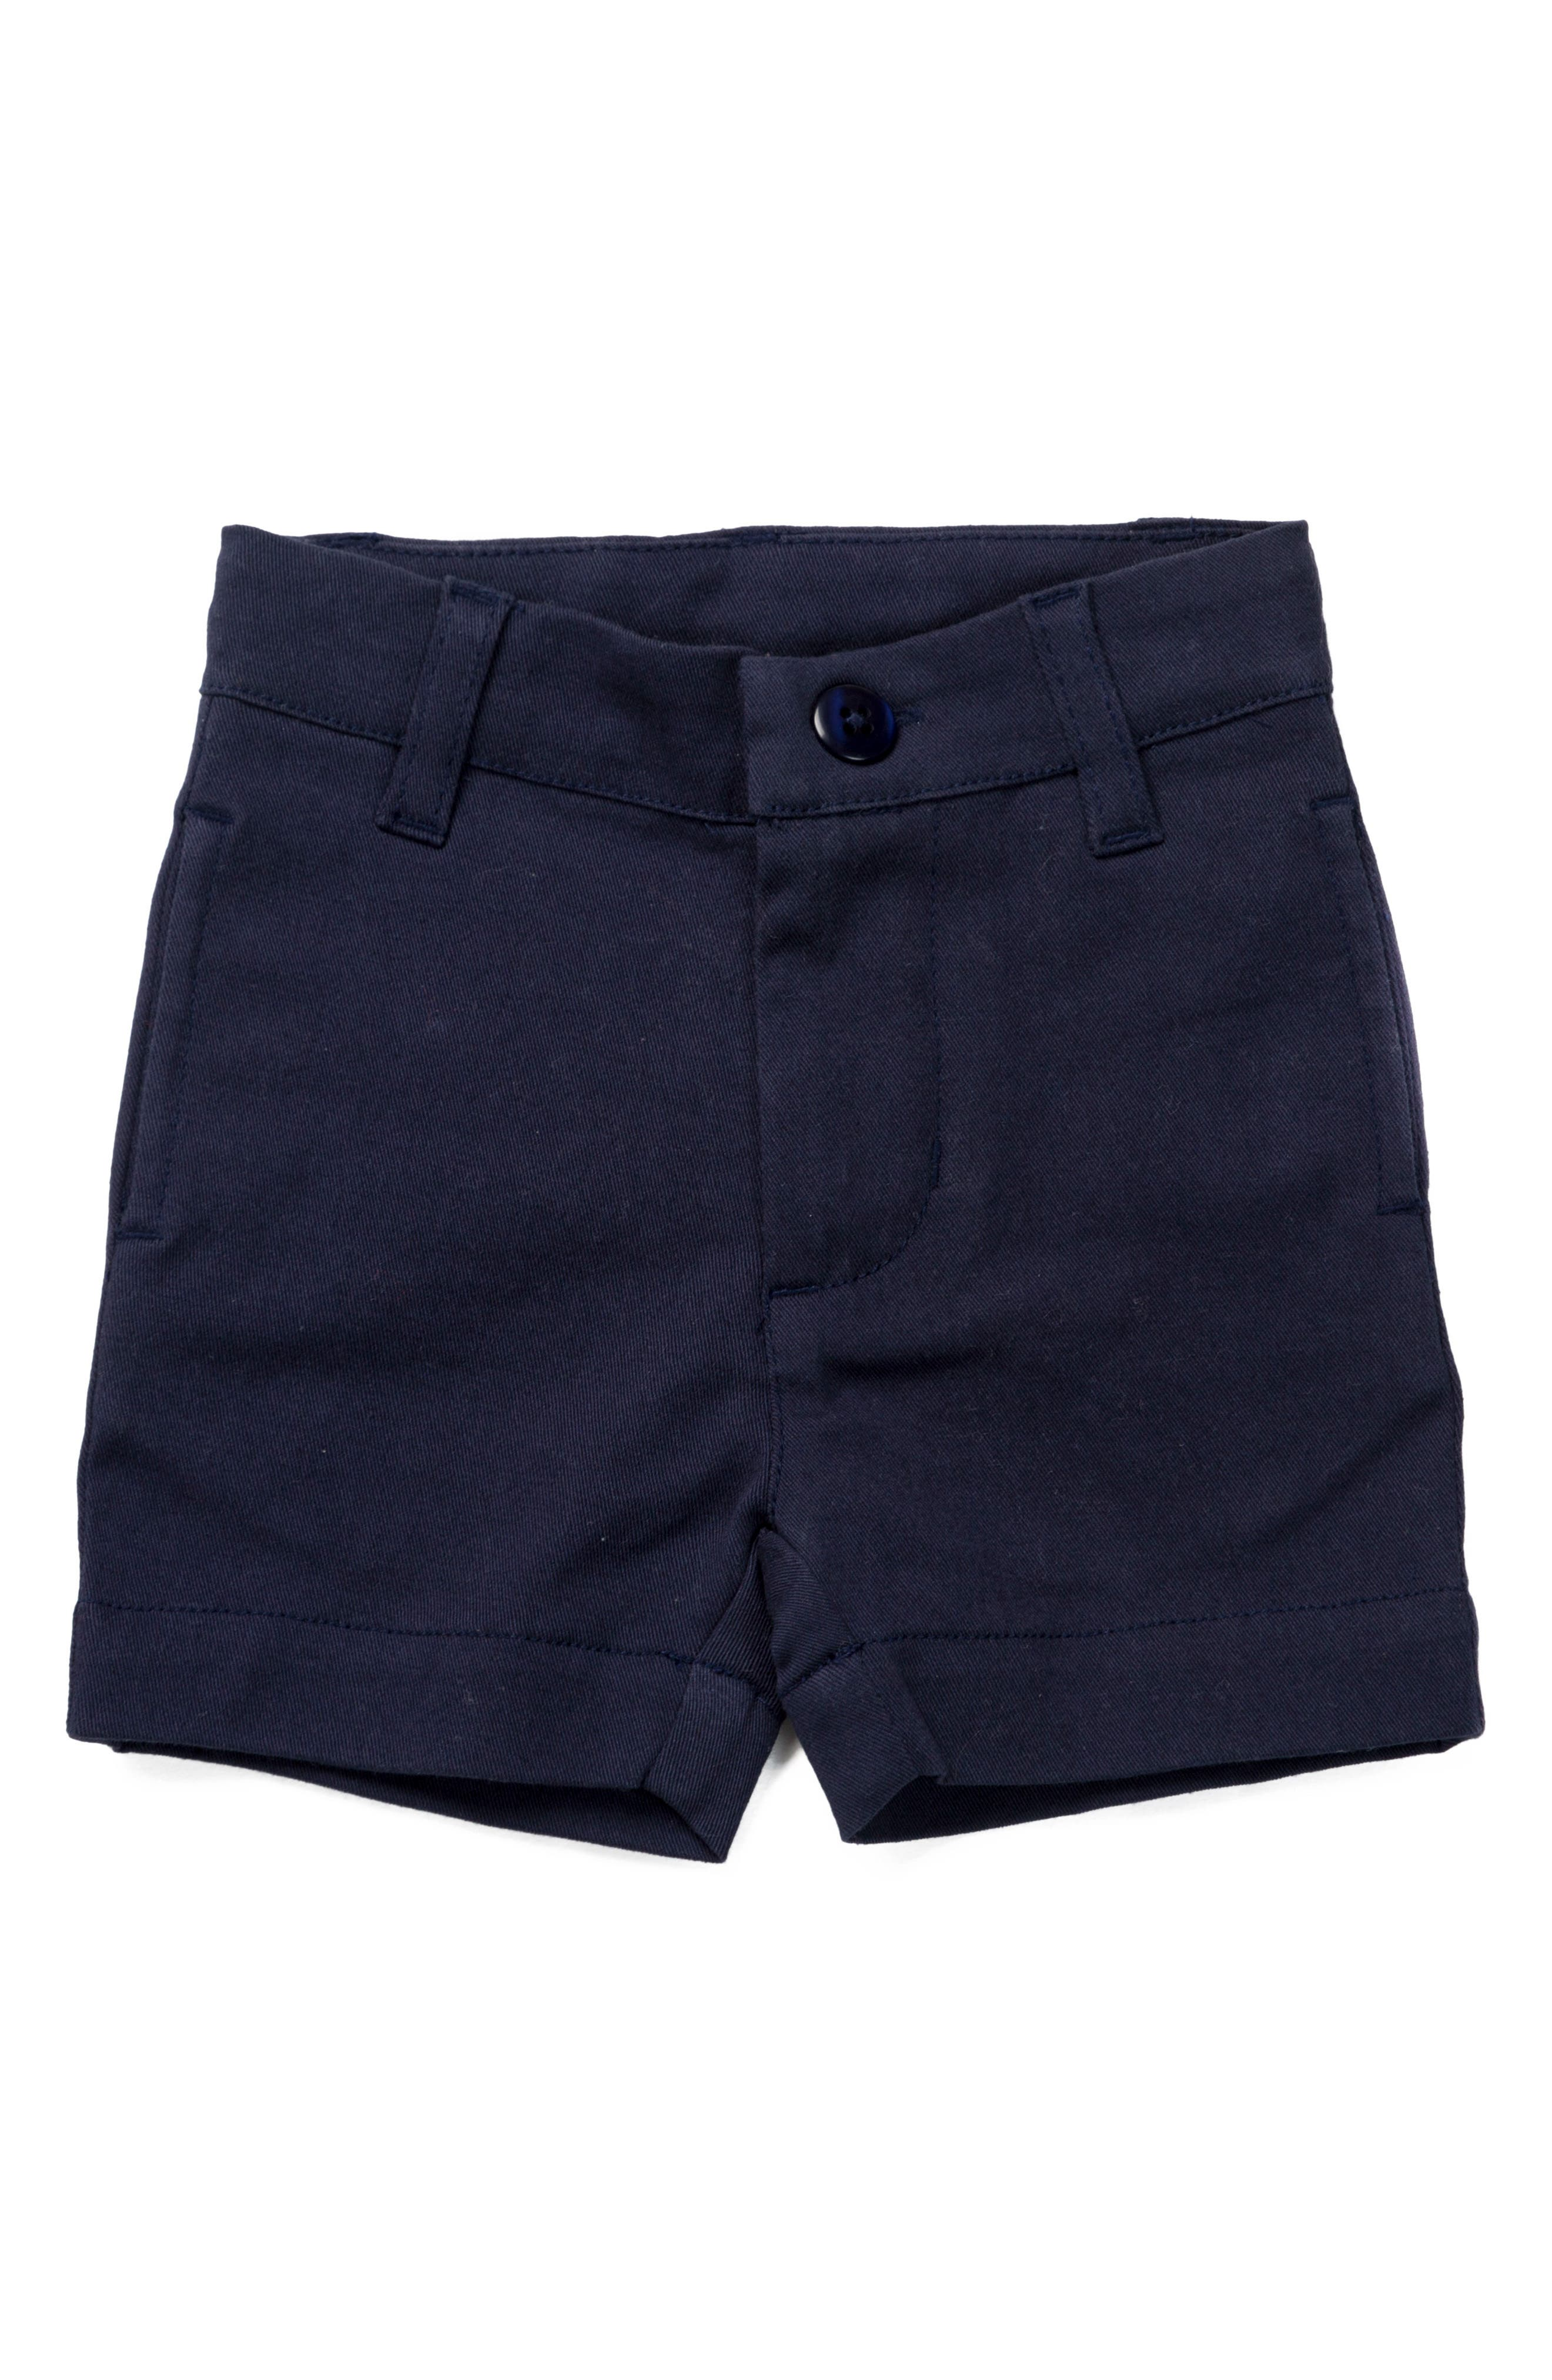 Old Sport Shorts,                         Main,                         color, Navy